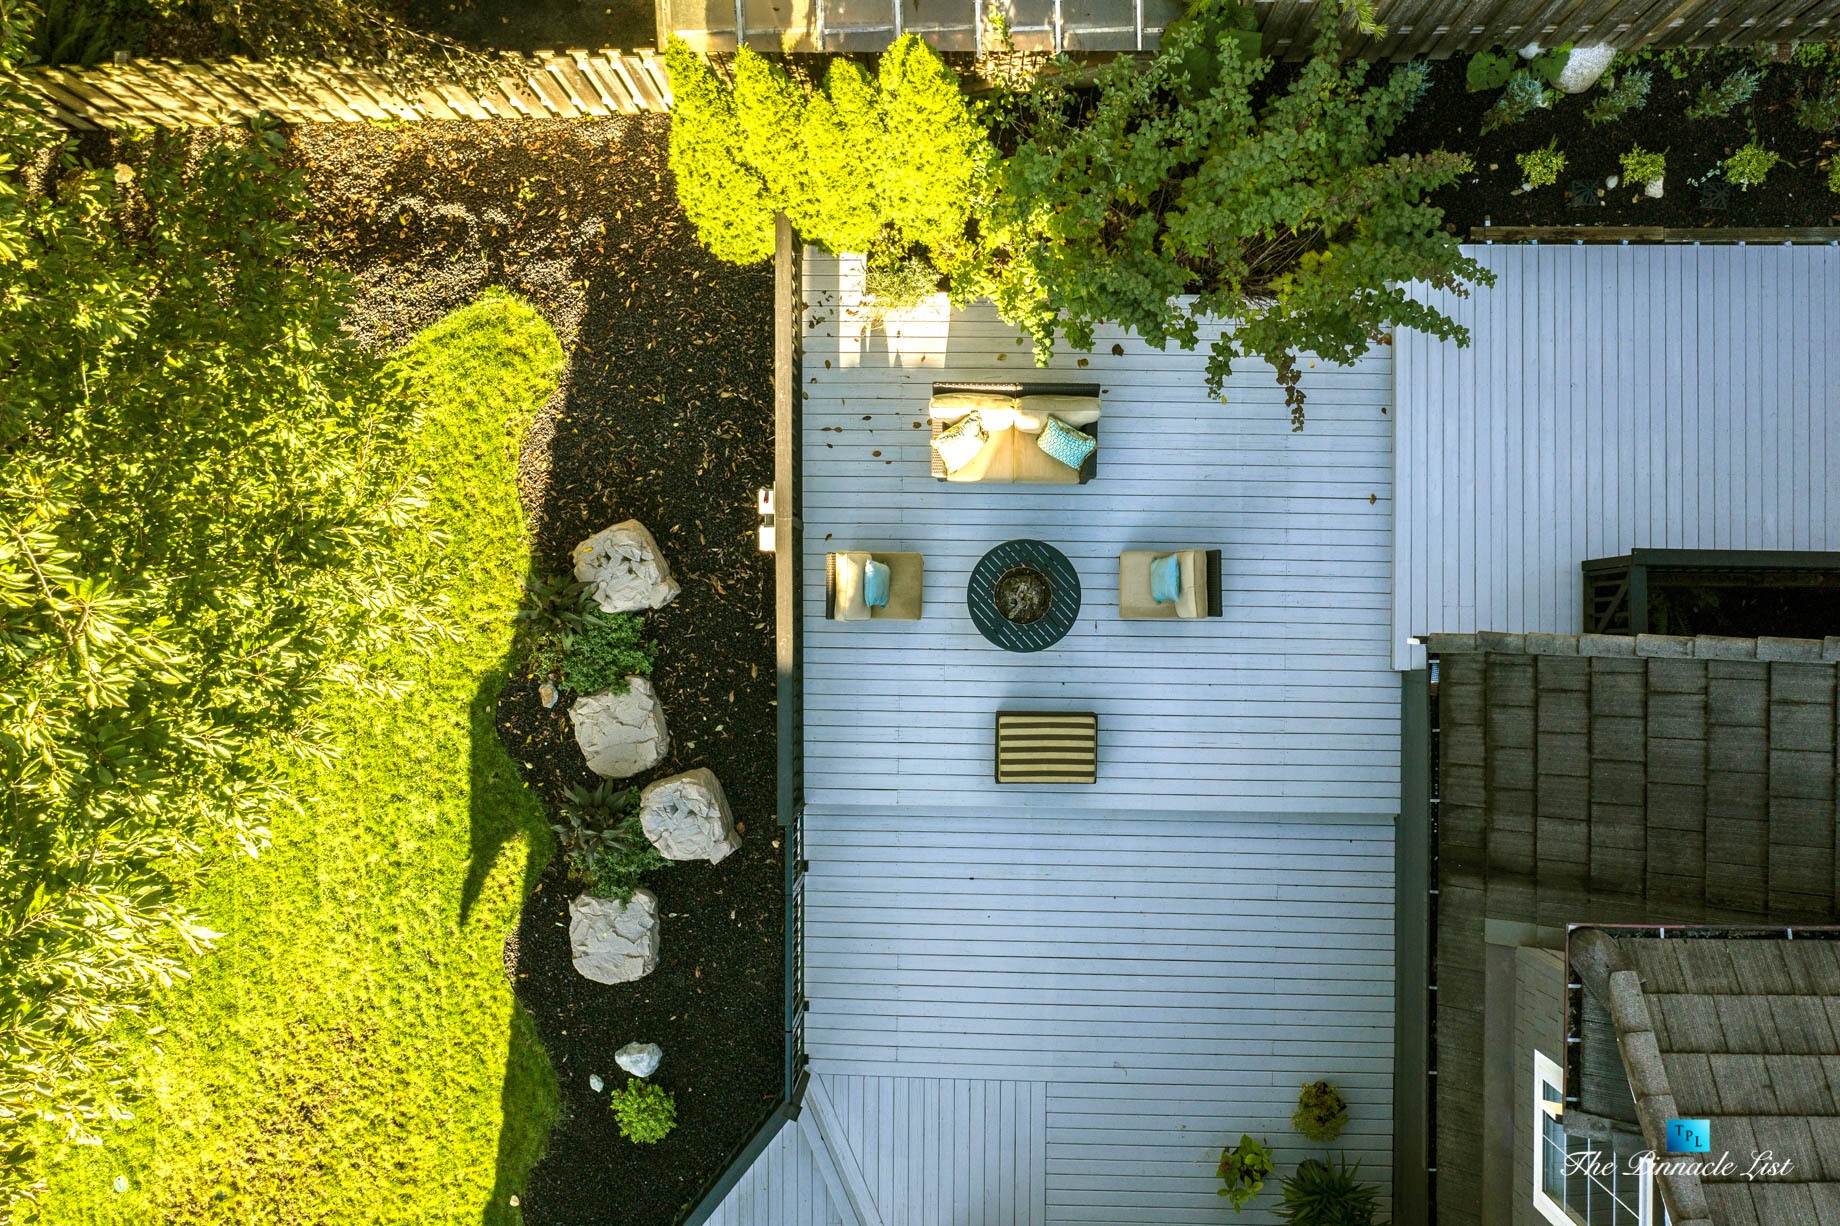 2366 Sunnyside Rd, Anmore, BC, Canada – Exterior Front Deck Overhead View